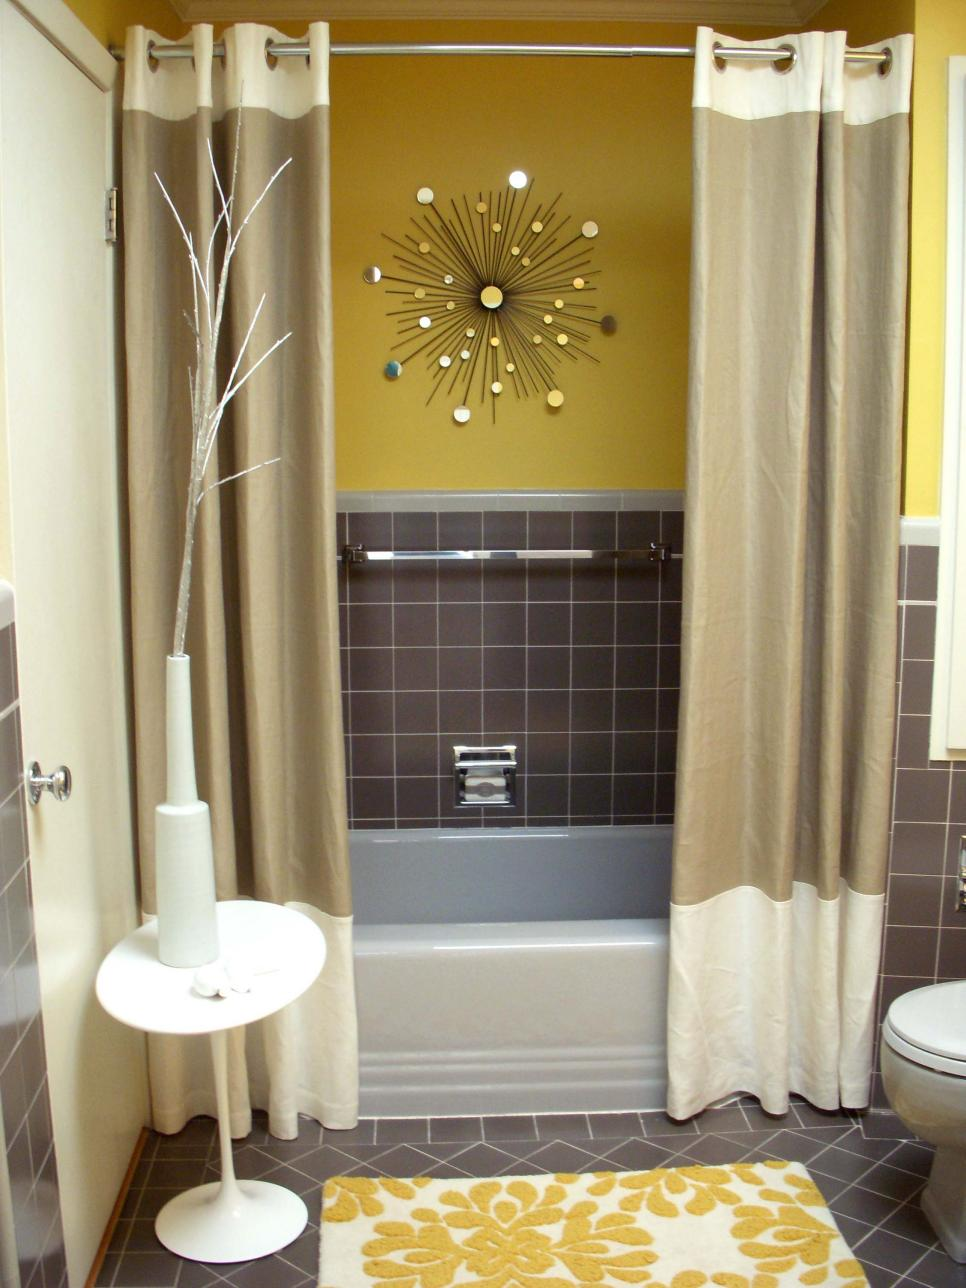 Inexpensive bathroom designs - Inexpensive Bathroom Designs 2